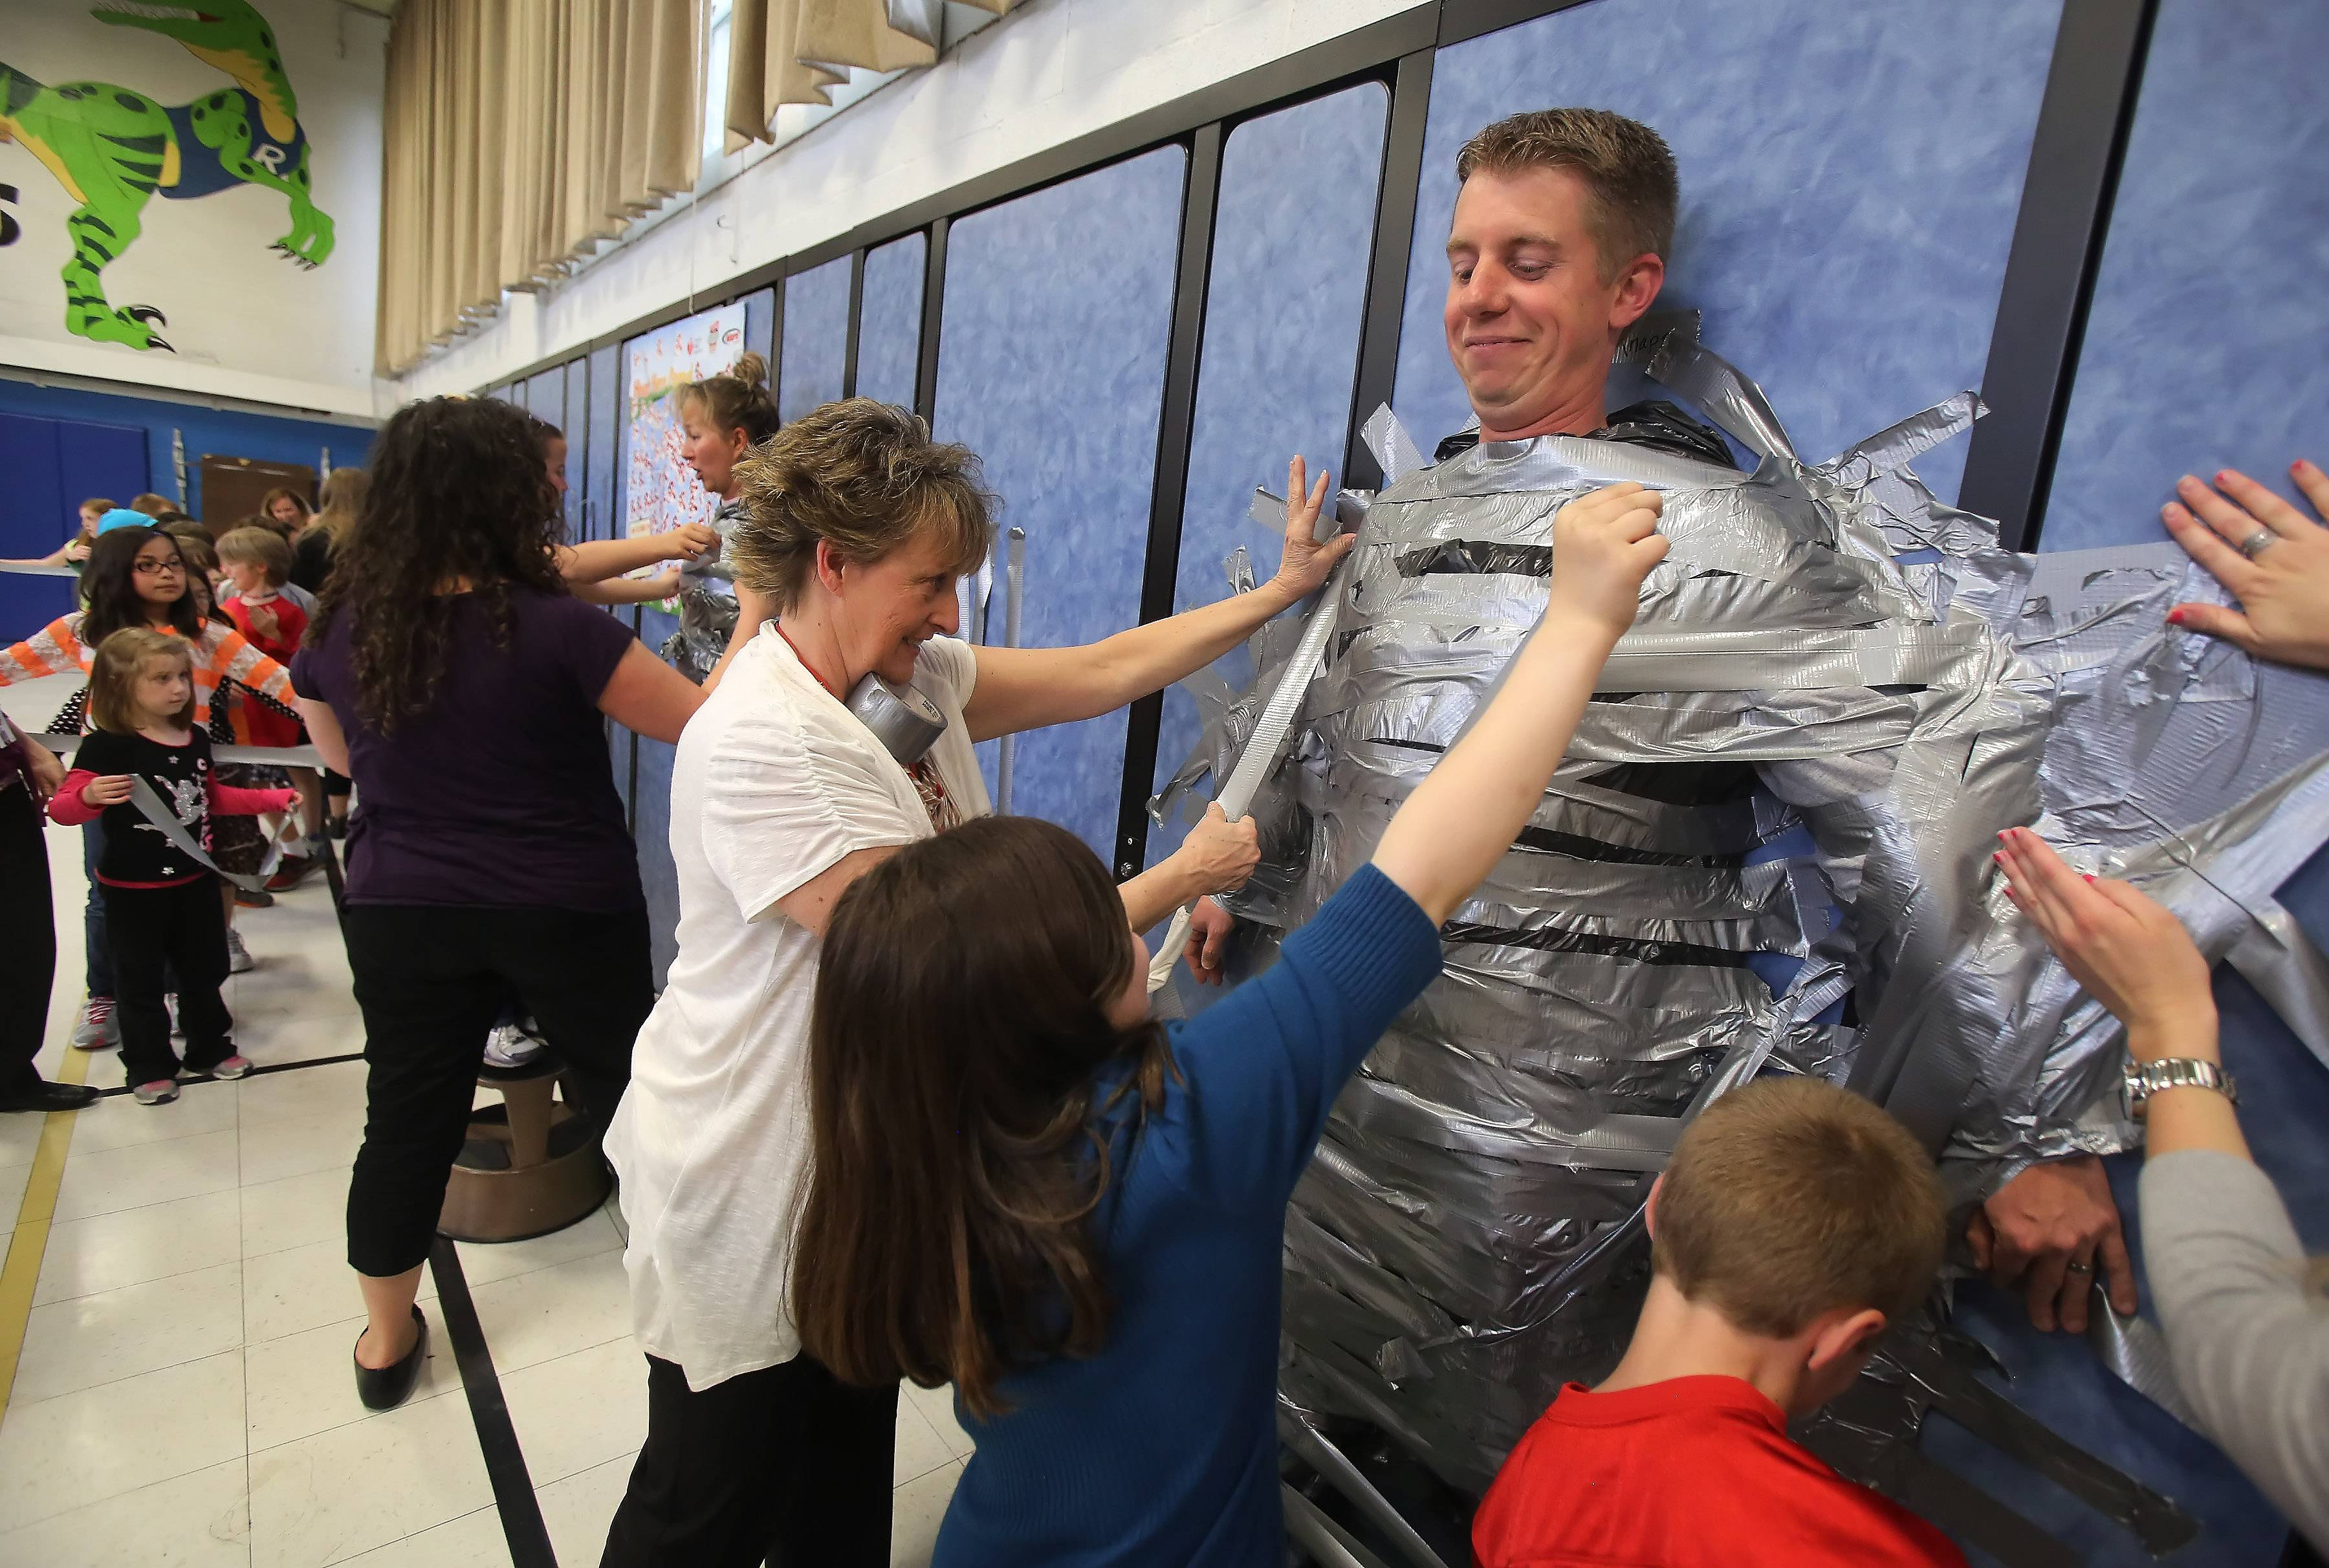 Rockland School students duct-tape Principal Jeff Knapp to the gym wall Tuesday to help celebrate the $7,217.46 raised for the American Heart Association through the Jump Rope For Heart at the Libertyville school. Learning Center Director Becky Johnson and physical education teacher Michael Kolar also were taped to the wall by students.